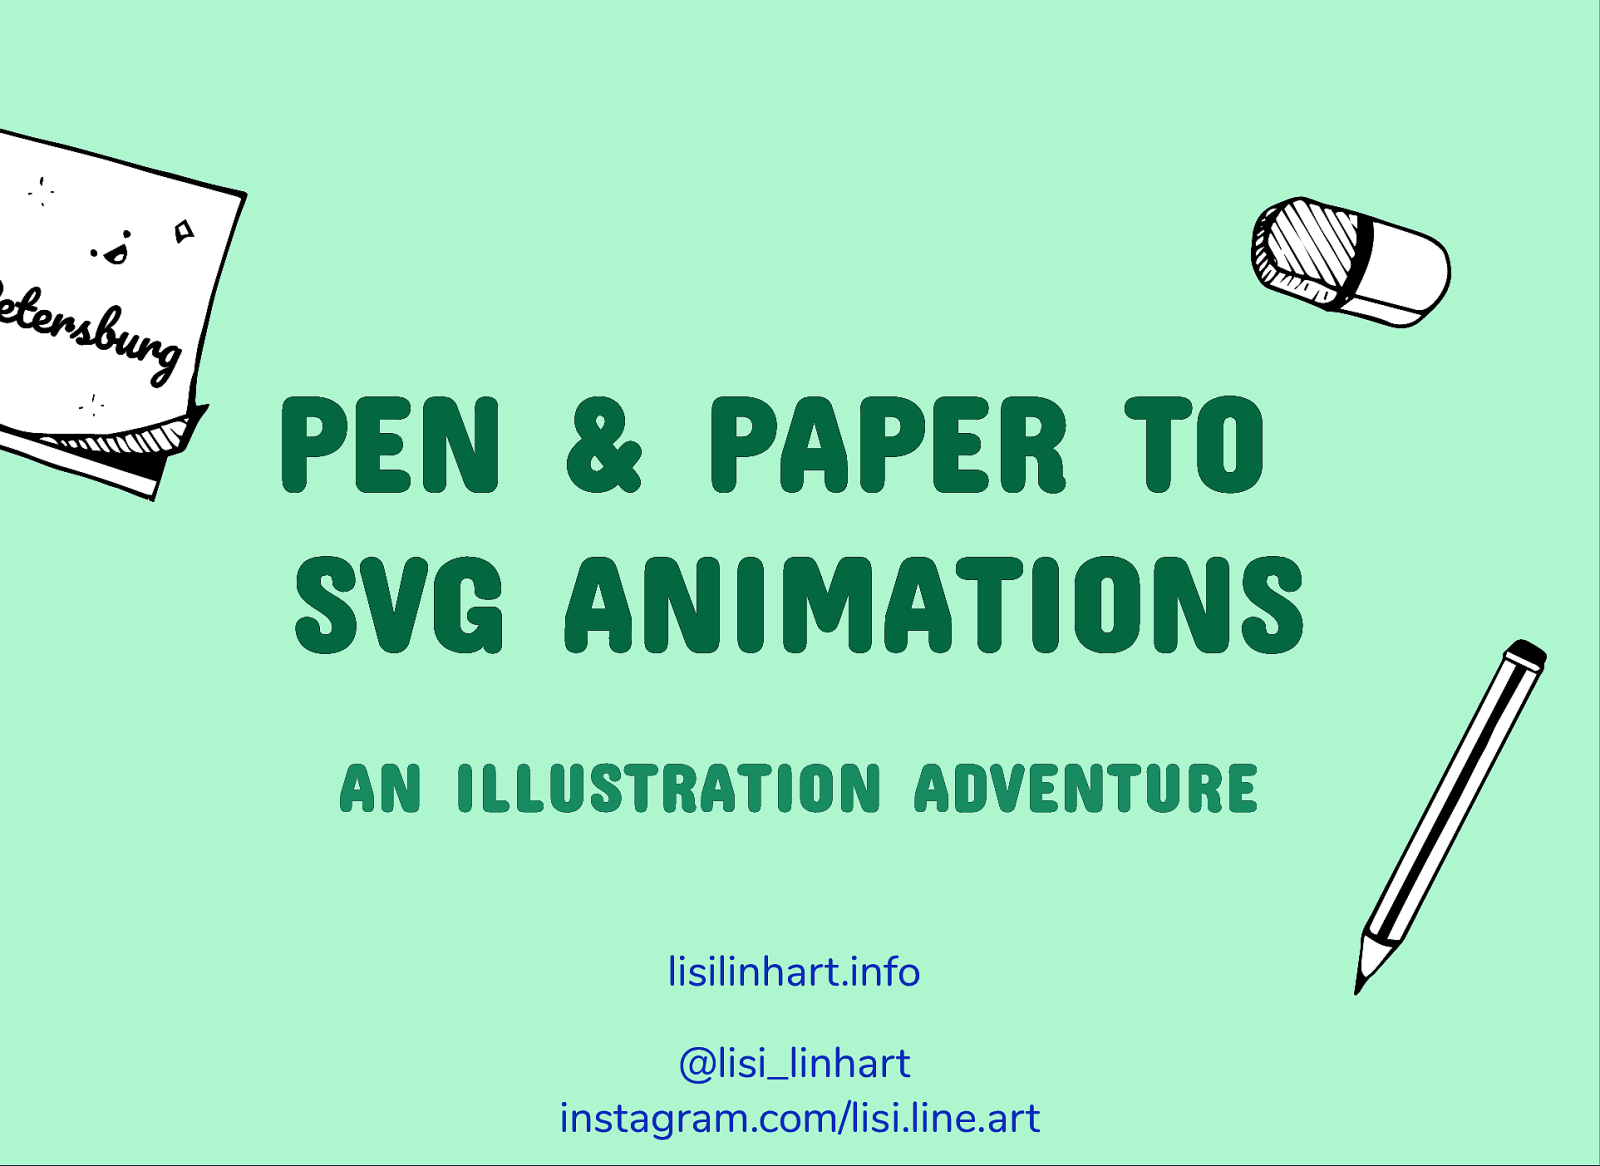 From Pen & Paper to SVG Animations. An Illustration Adventure